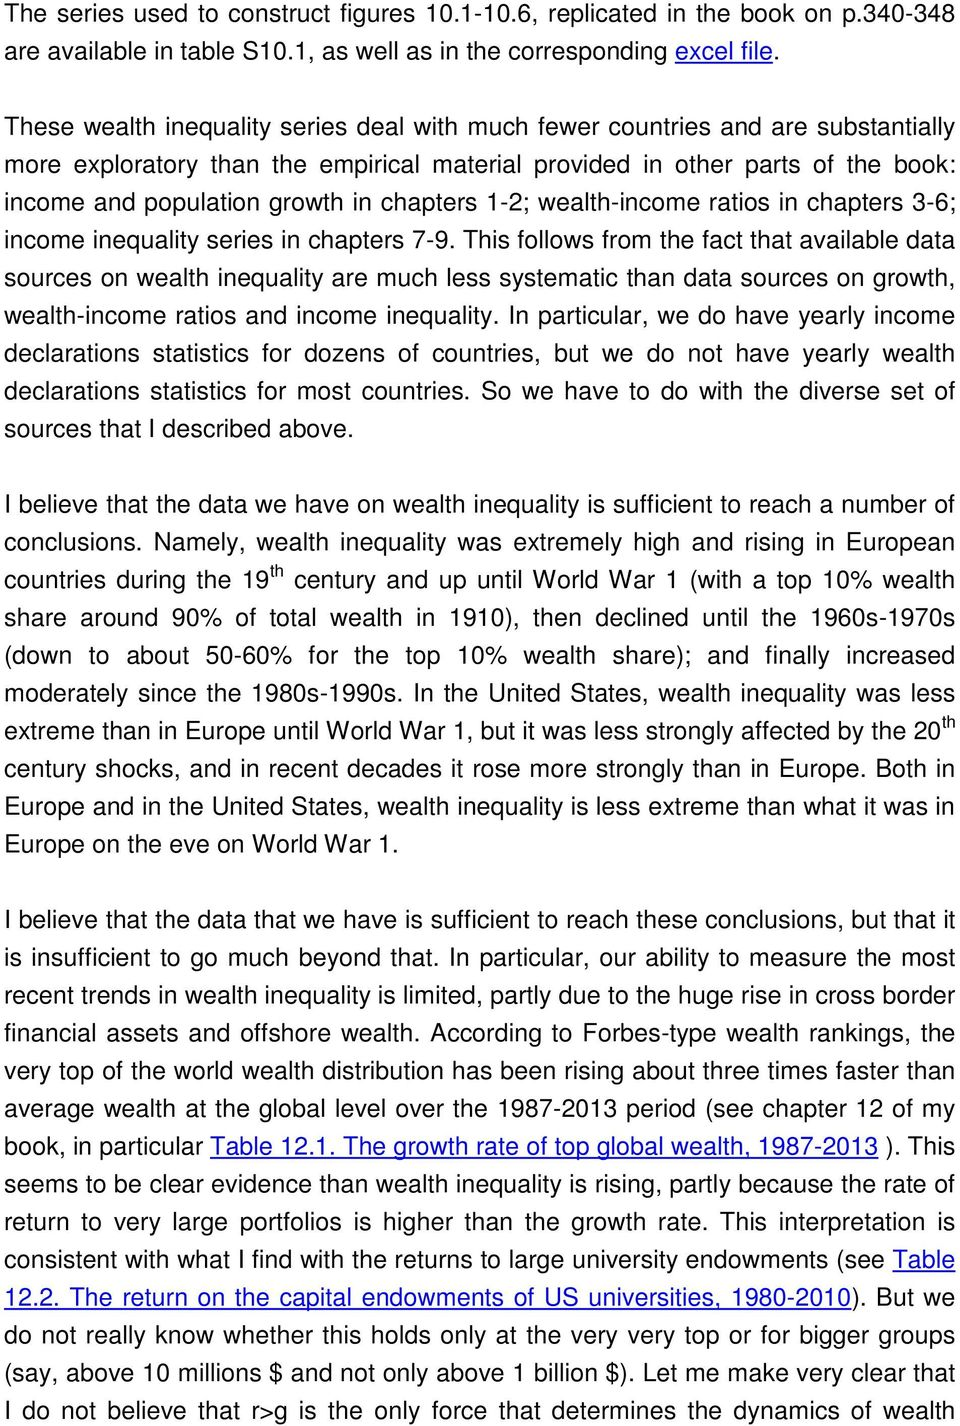 chapters 1-2; wealth-income ratios in chapters 3-6; income inequality series in chapters 7-9.